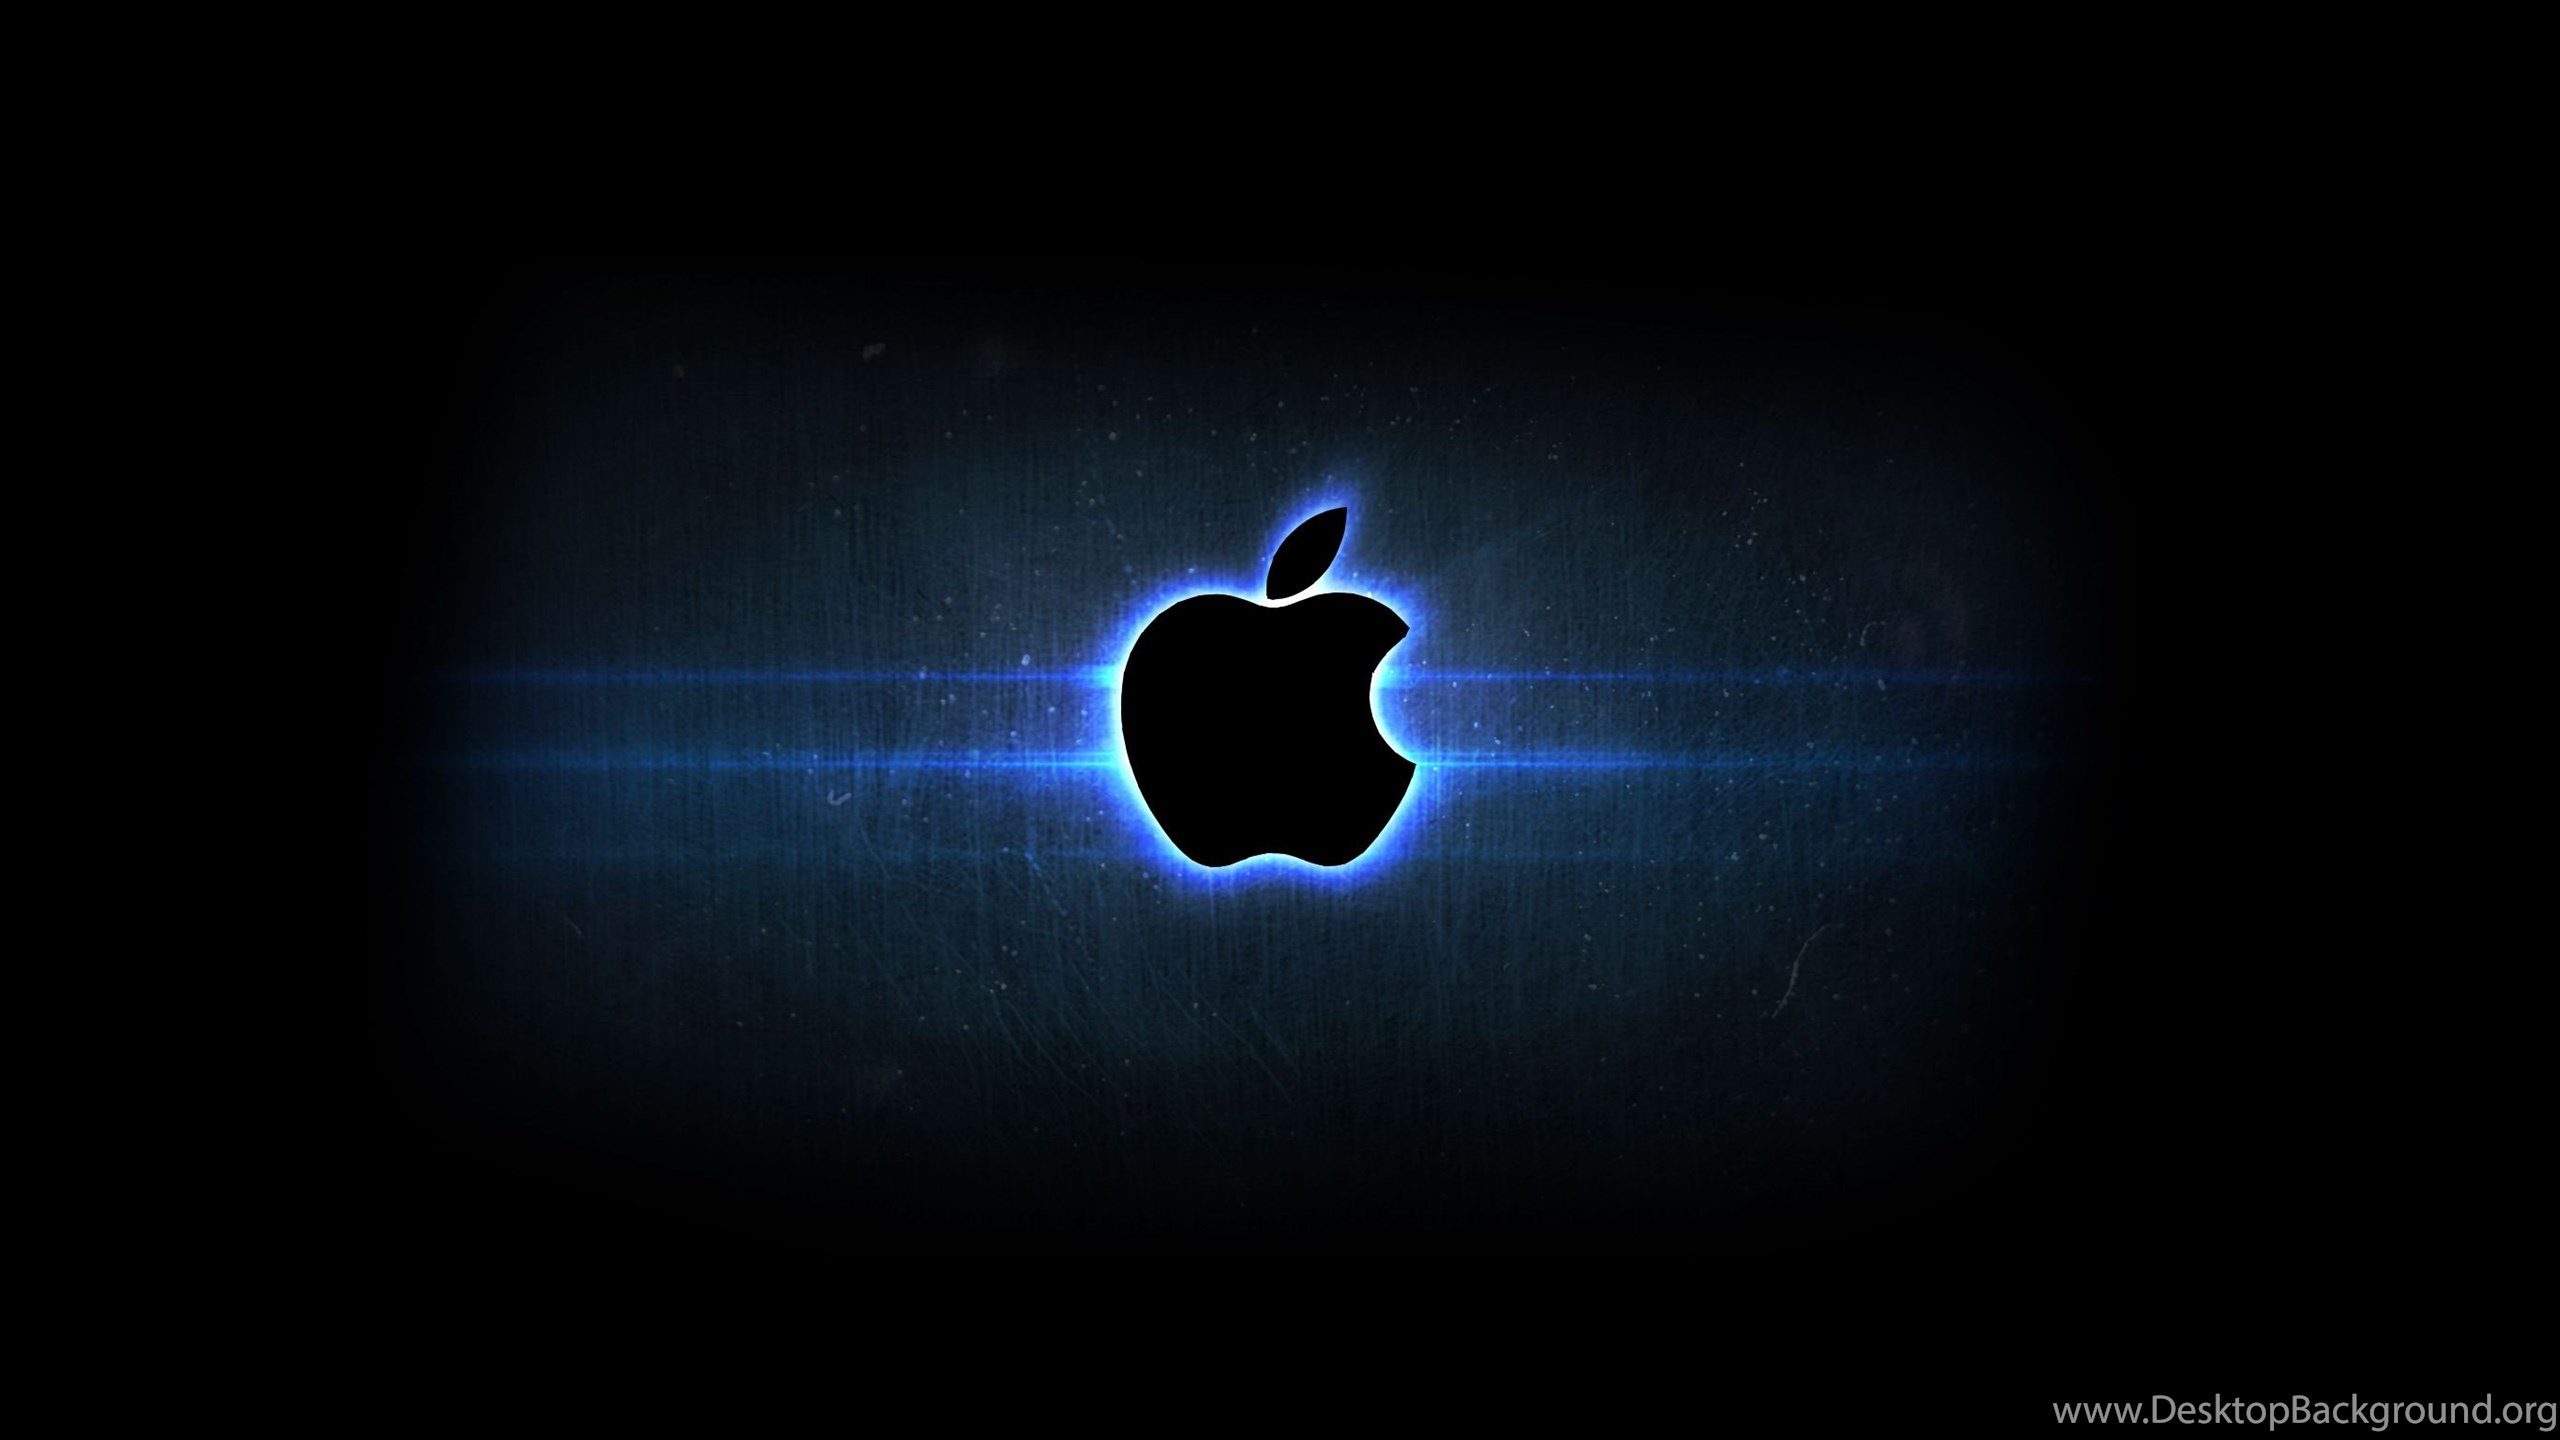 Apple Wallpapers Black Cool Wallpapers HD 1080p Desktop